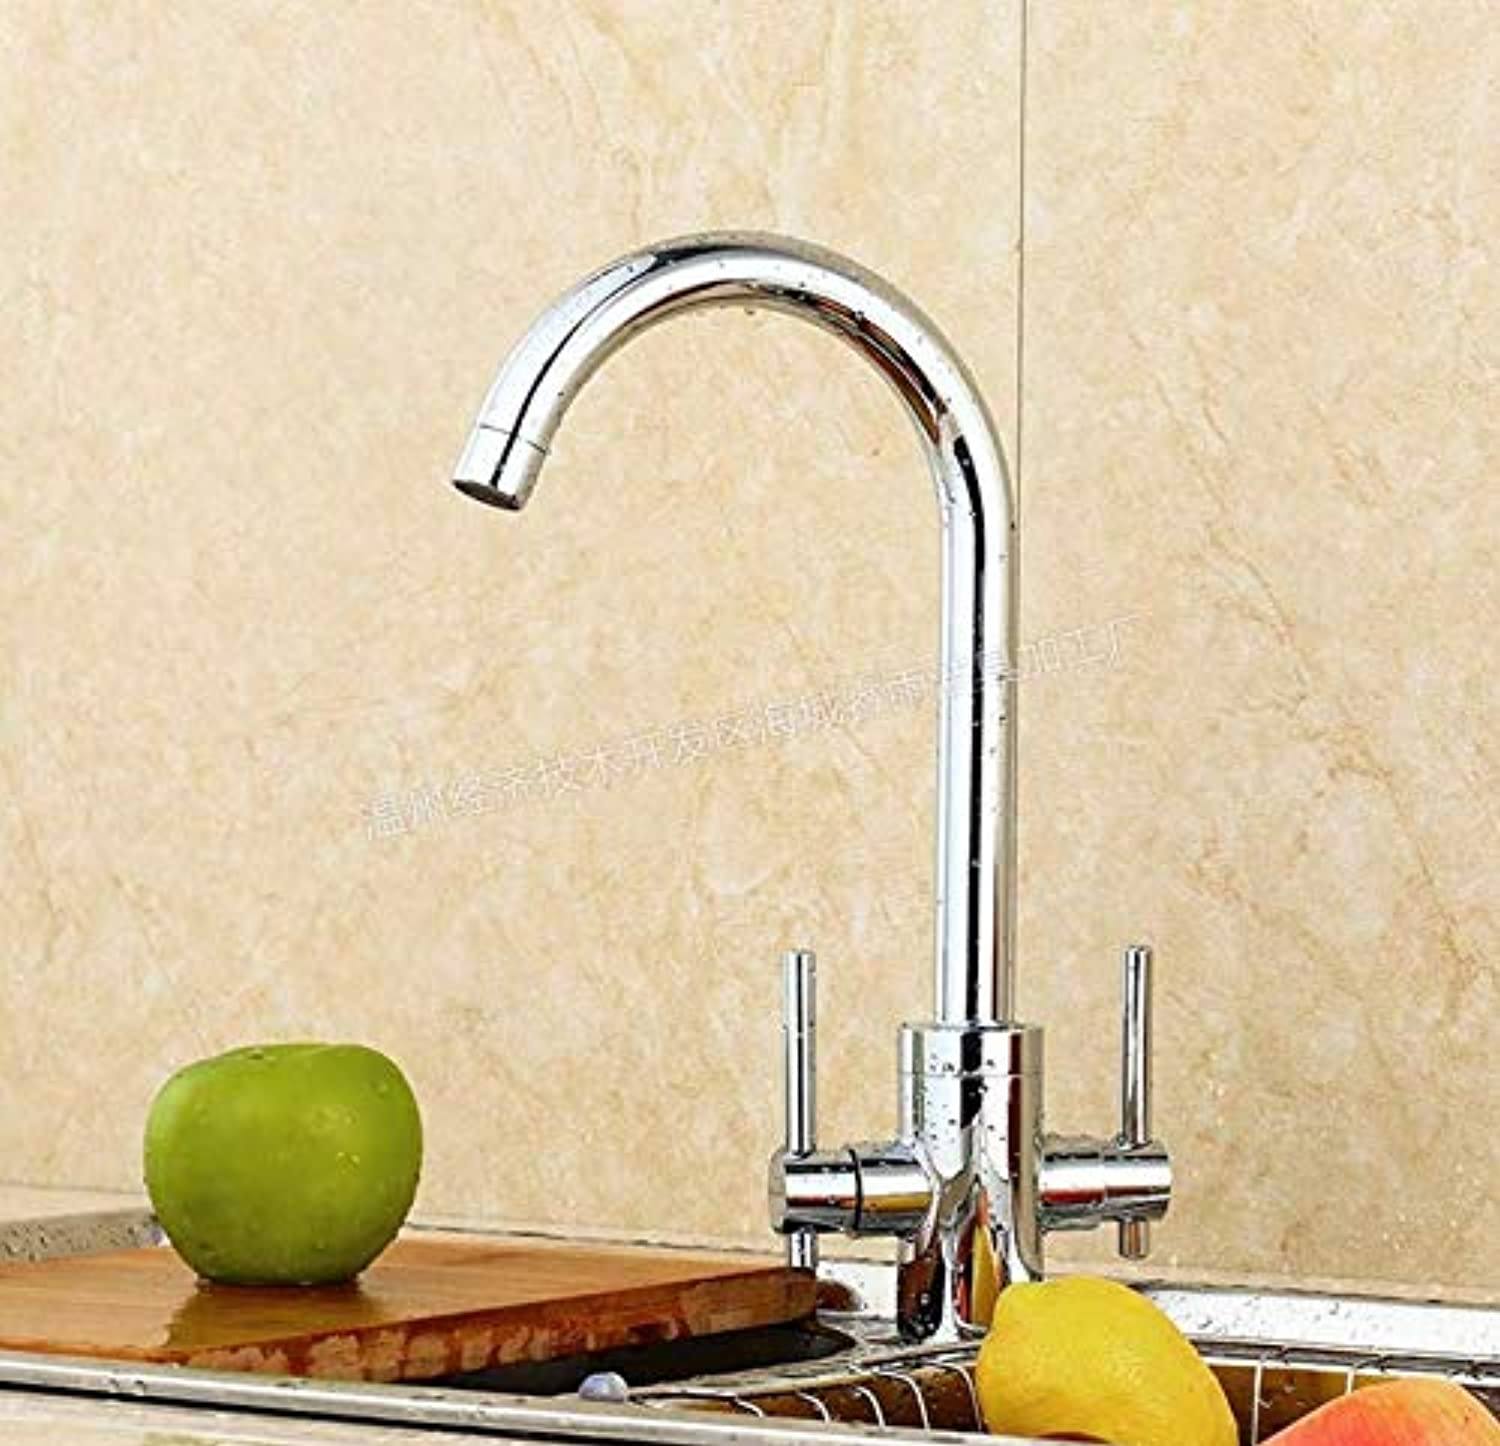 Water Taptaps Faucet Hand Wheel Kitchen Faucet Double-Connected Copper Mixed Water Faucet